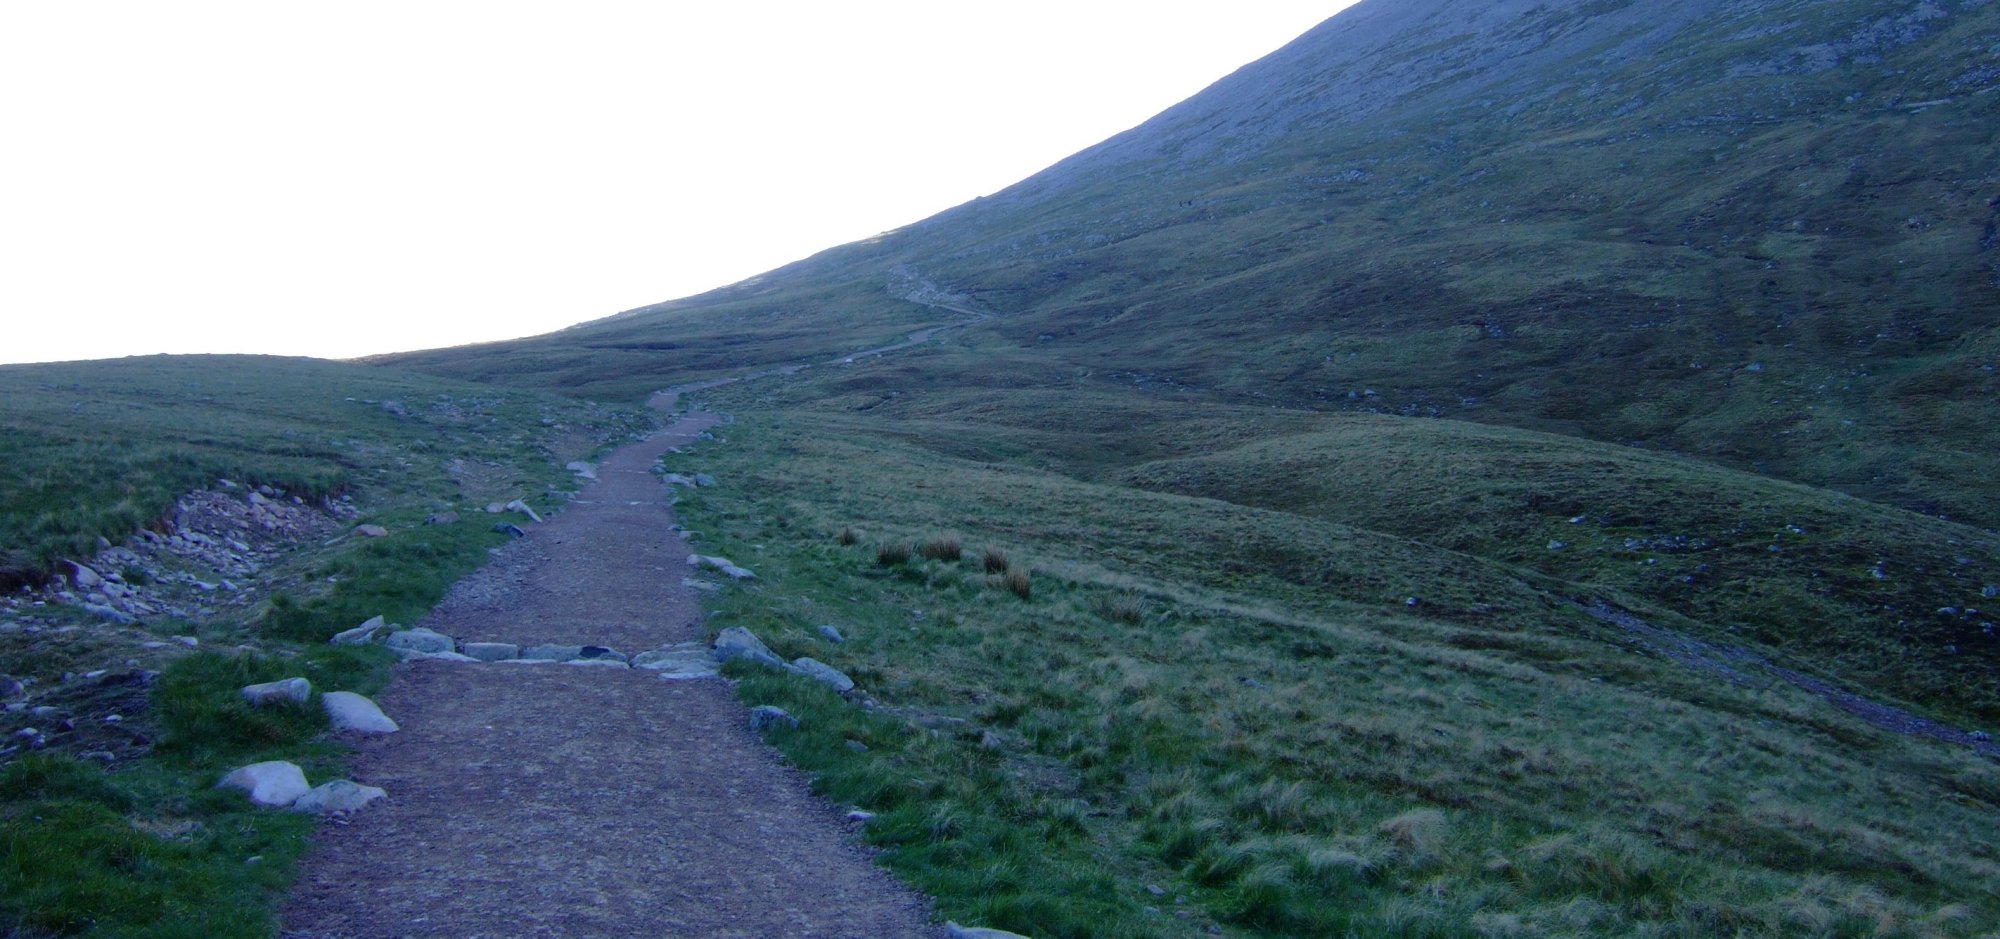 The path is shaded for most of the first half of the climb